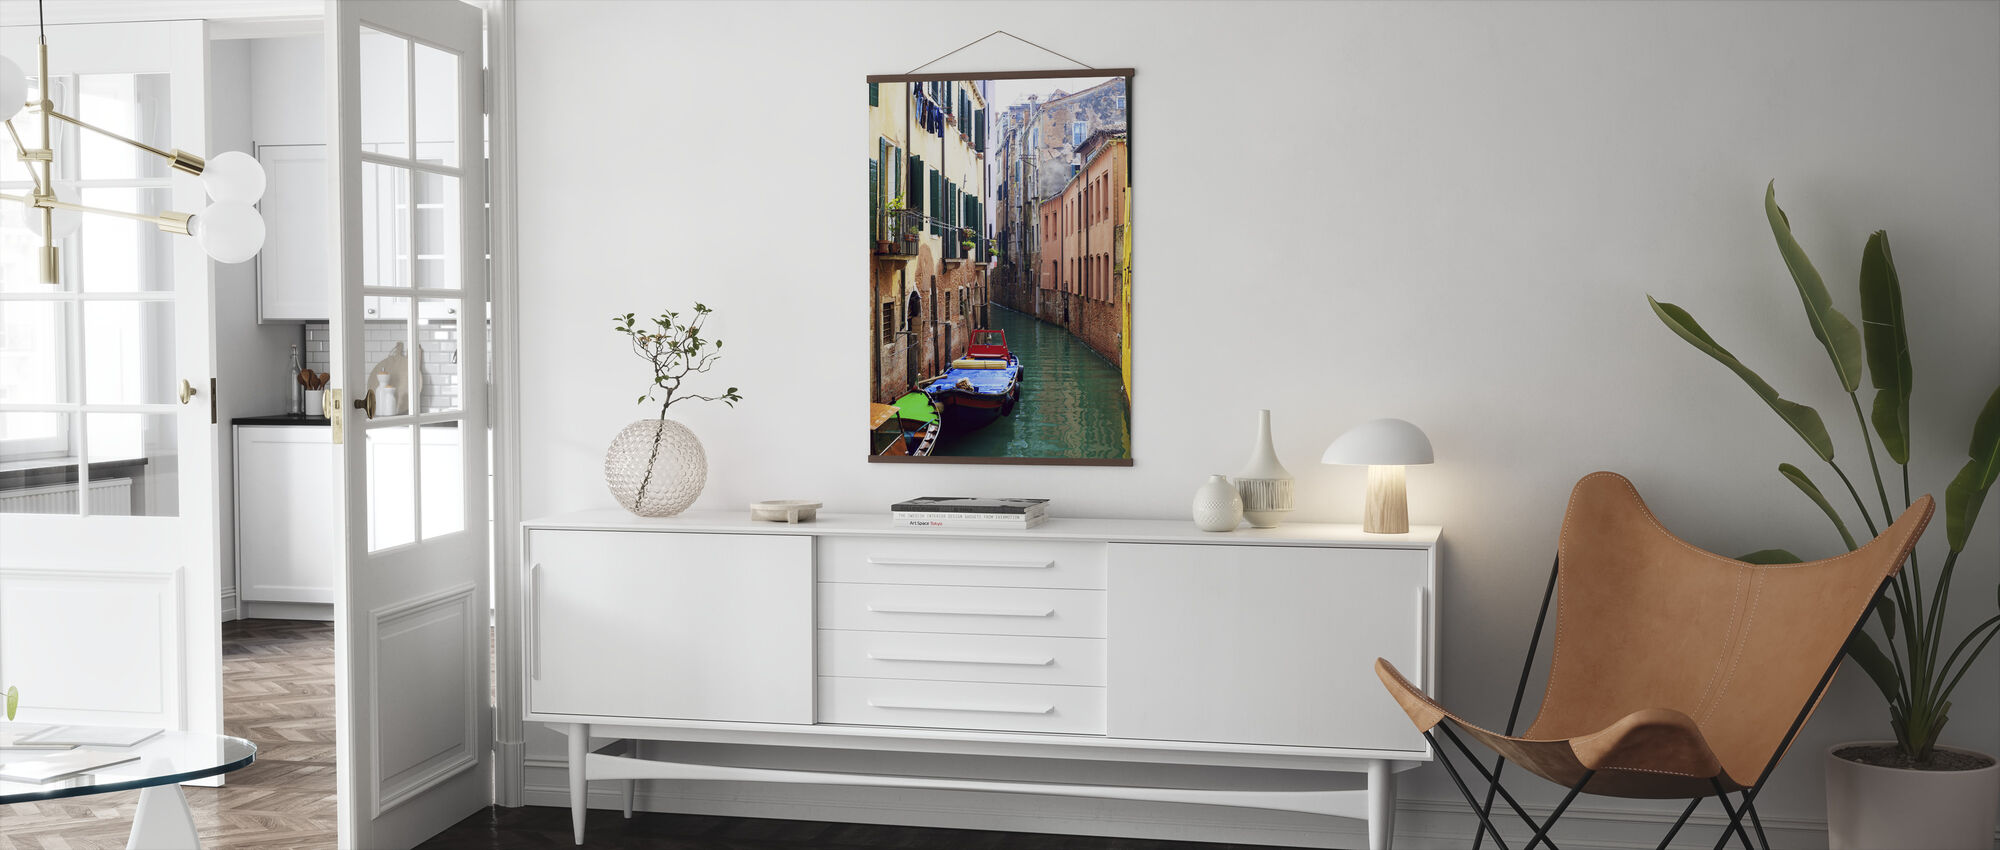 Coloured Boats Moored in Back Street Canal - Poster - Living Room